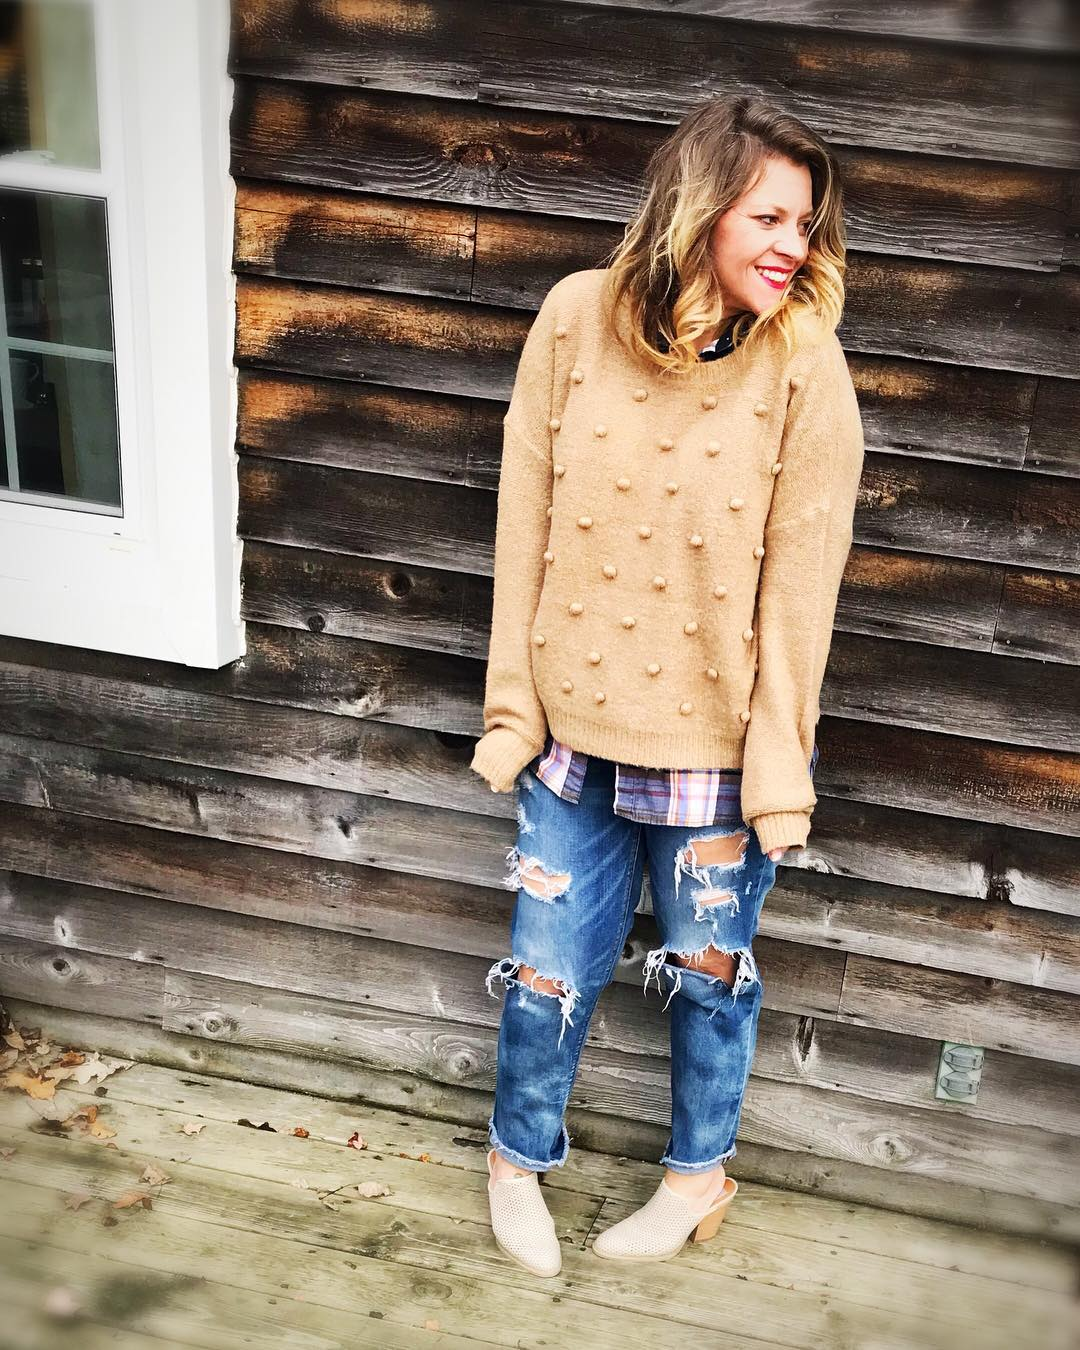 Chic Pompom Sweater Paired With Plaid Shirt And Ripped Jeans